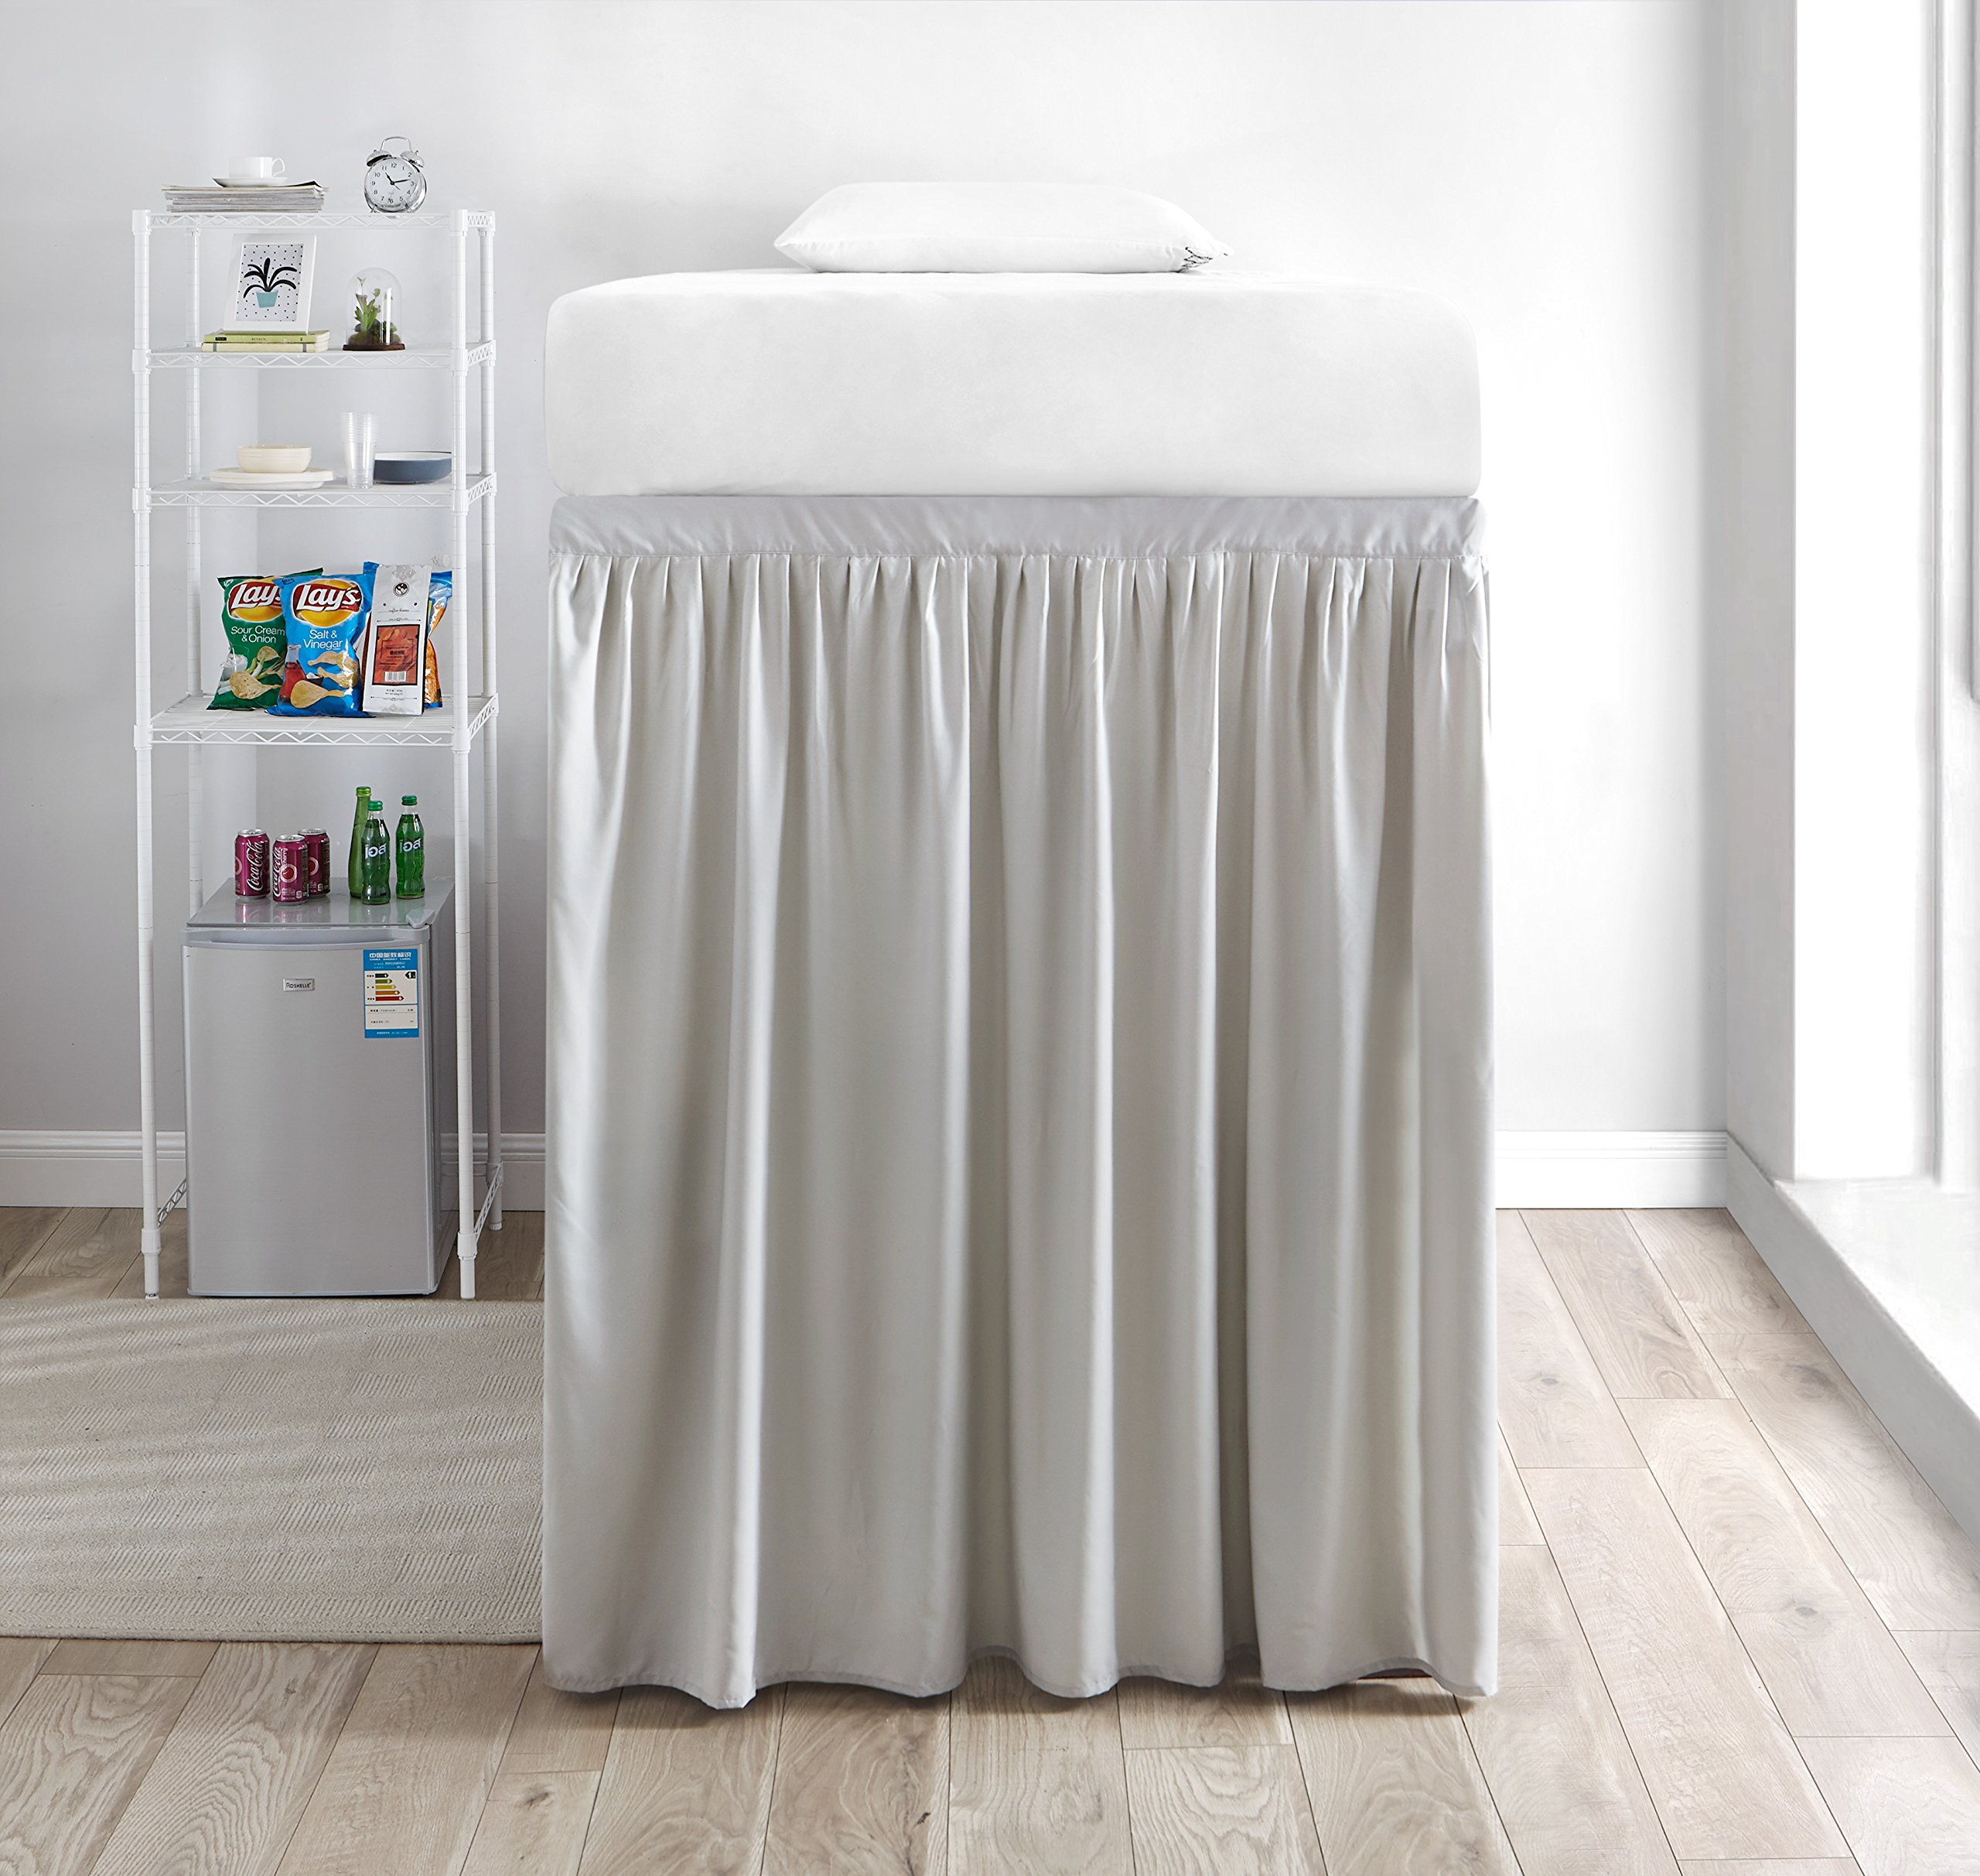 Extended Dorm Sized Bed Skirt Panel with Ties (1 Panel) - Silver Birch (For raised or lofted beds)